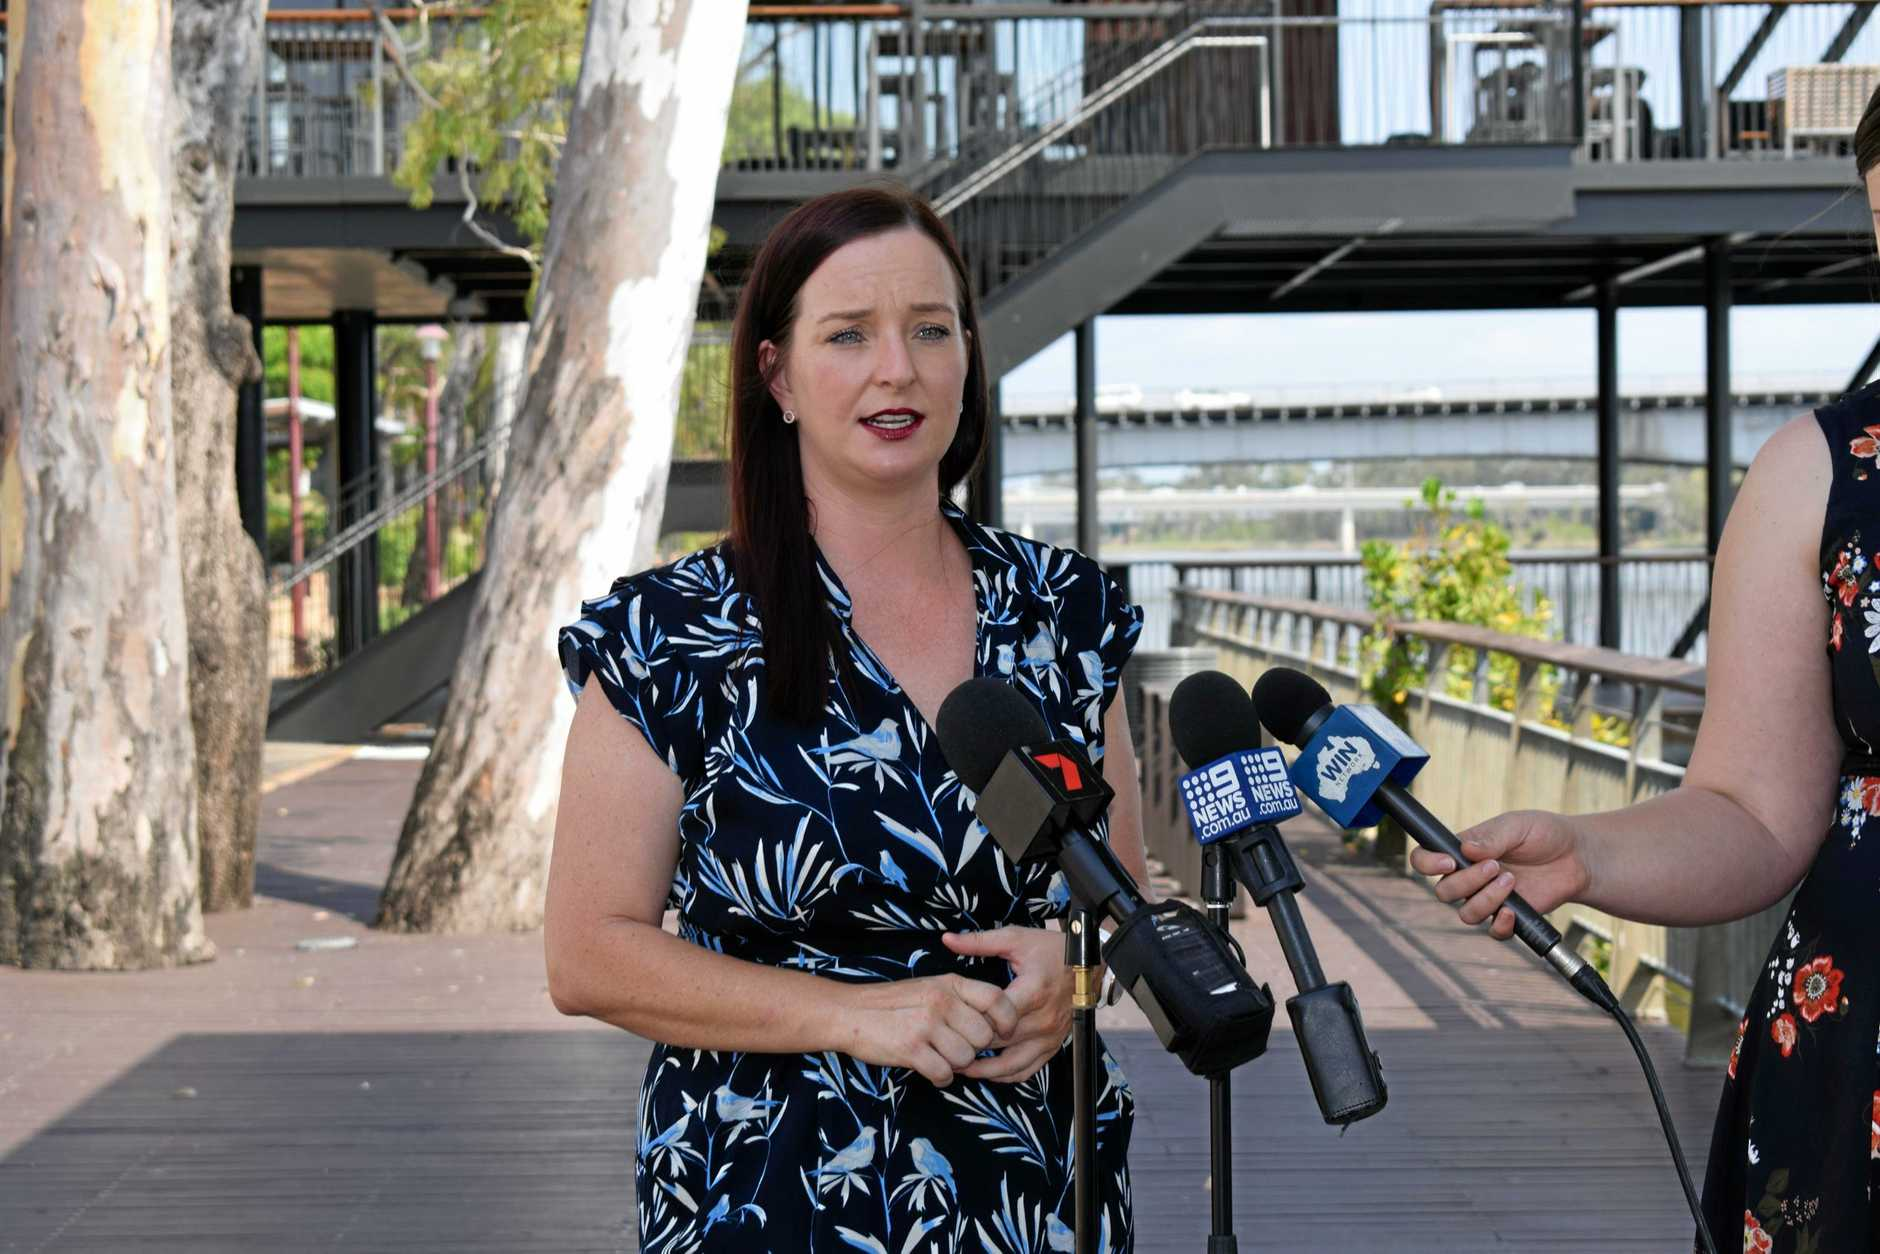 CONSTRUCTION ANNOUNCED: Member for Keppel and Assistant Education Minister Brittany Lauga today announced construction of Central Queensland's $14.3 million residential drug rehabilitation and treatment facility will begin in 2020.